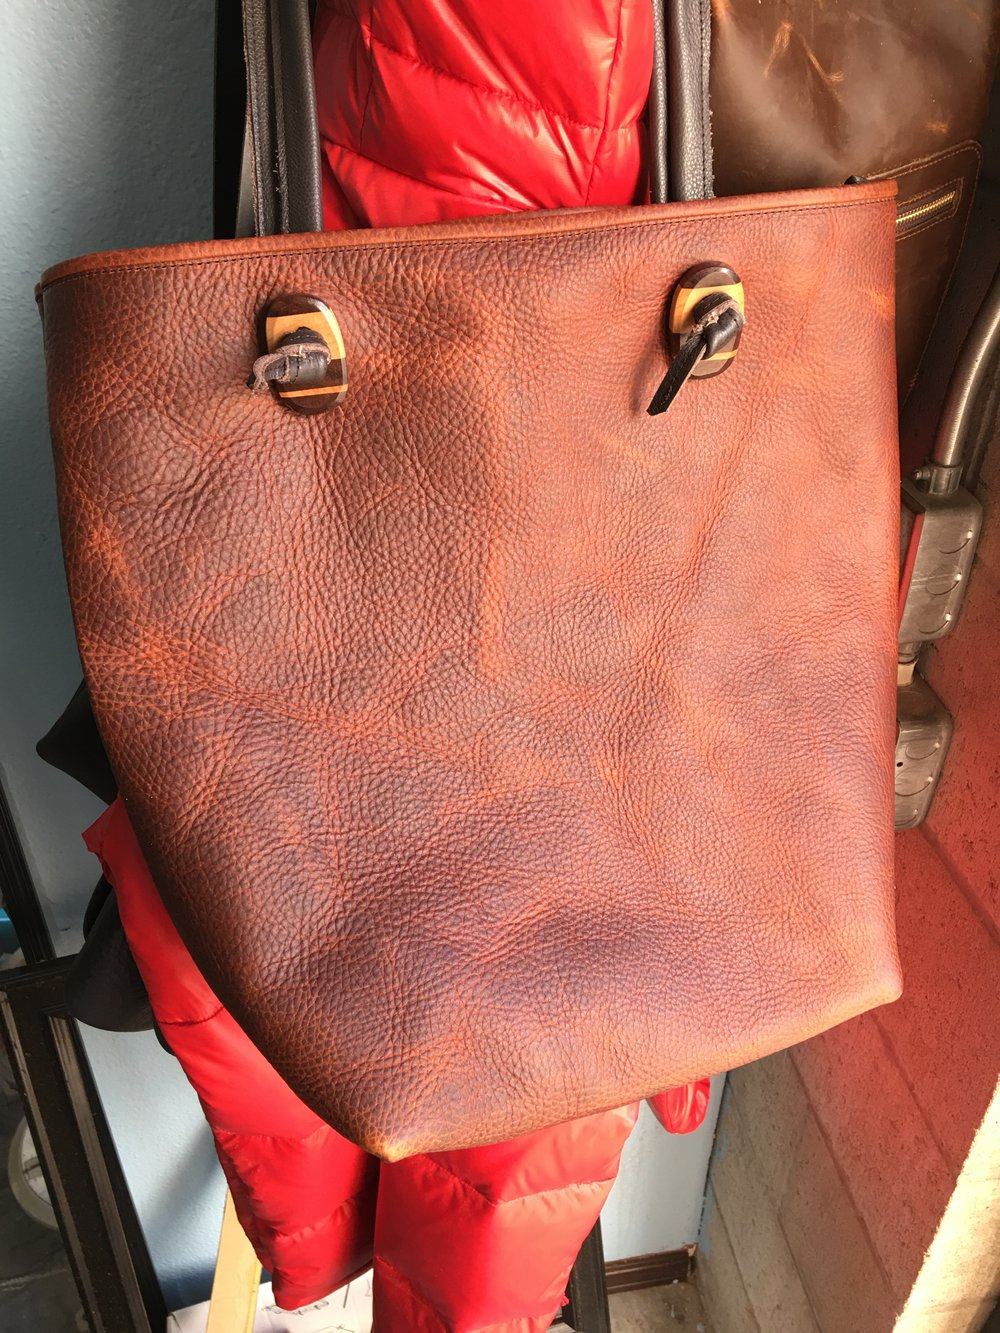 Another tote made of this lovely tumbled leather I just got recently, it's really quite stunning in person